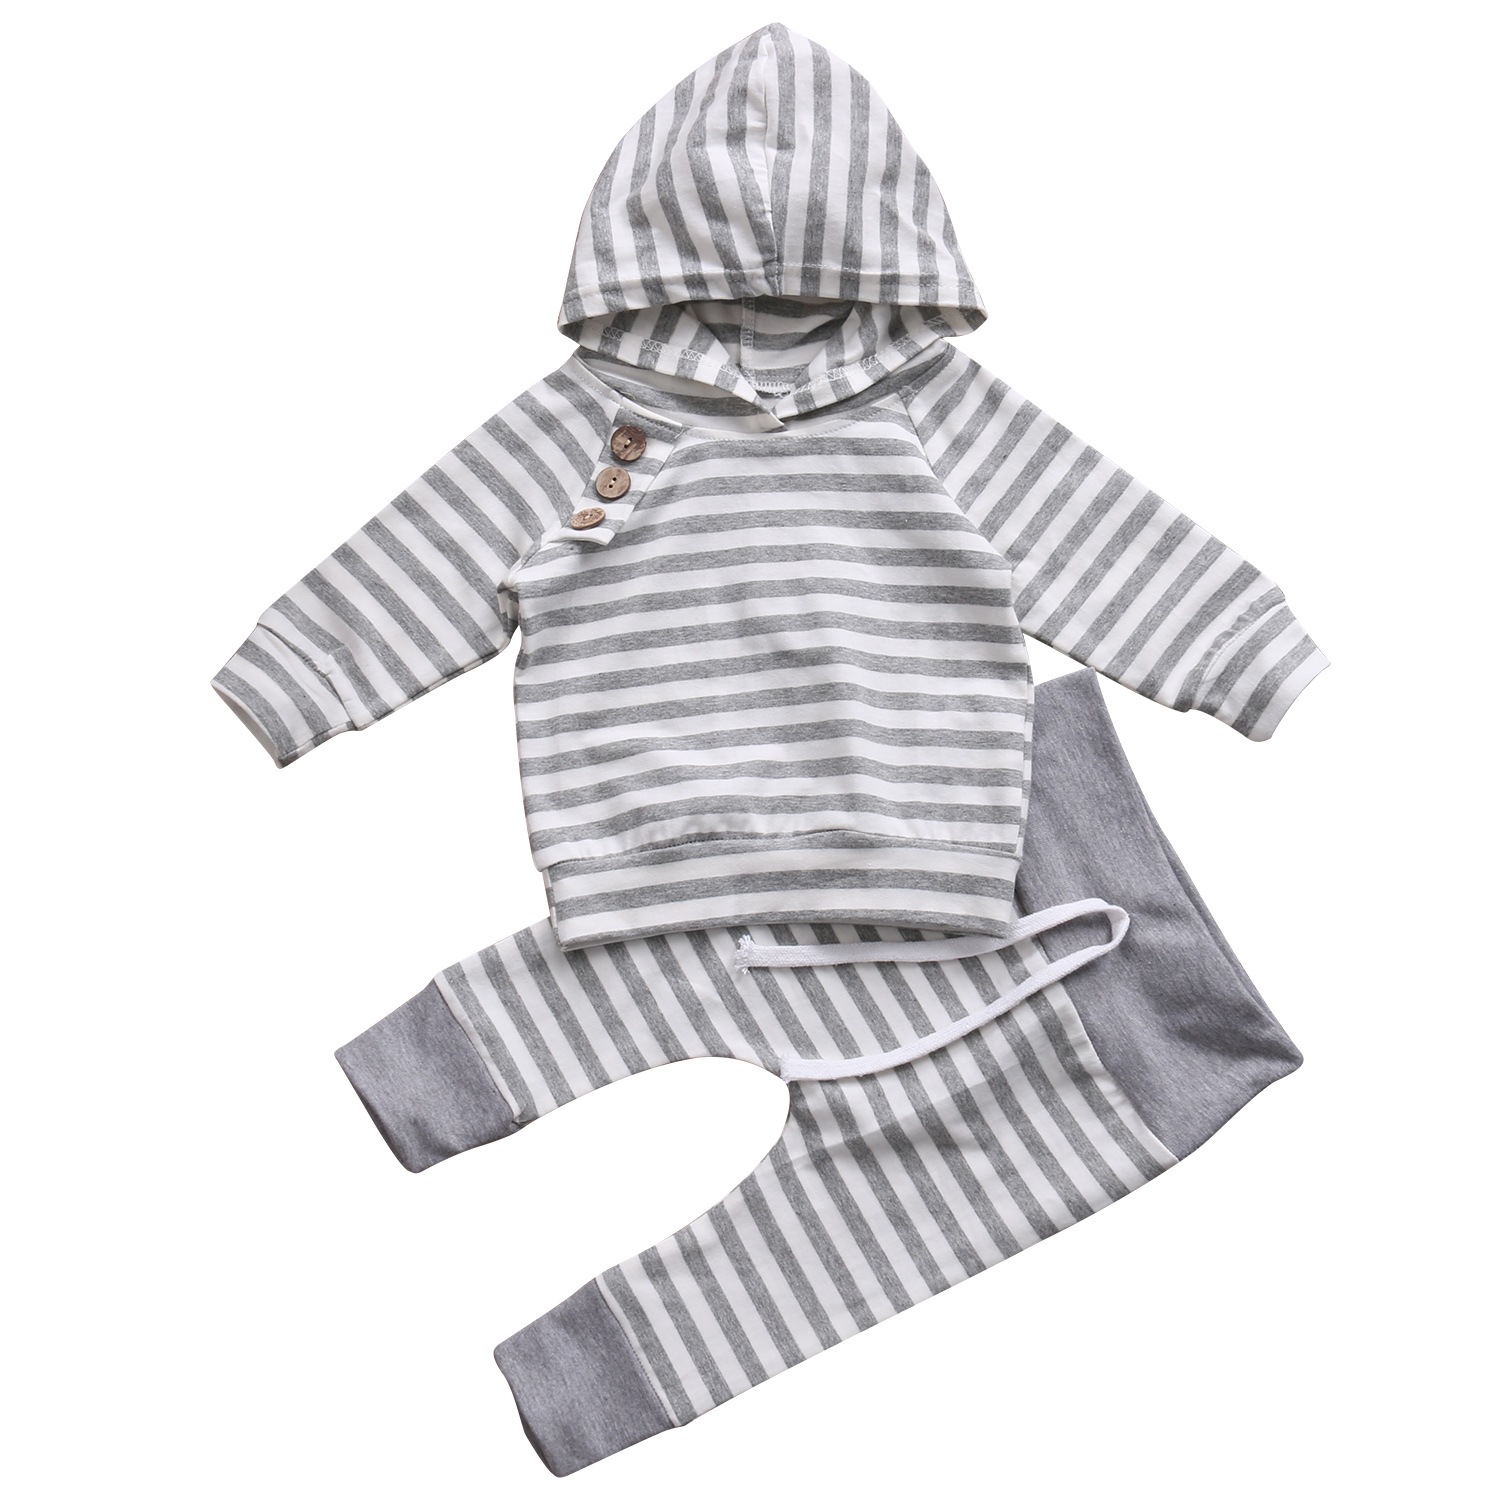 Toddler Newborn Infant Kids Baby Boy Girl Hoodie Tops Long Sleeve Shirt Pants Striped Outfit 2Pcs Set Clothes 2Pcs Set 2017 newborn baby boy clothes summer short sleeve mama s boy cotton t shirt tops pant 2pcs outfit toddler kids clothing set